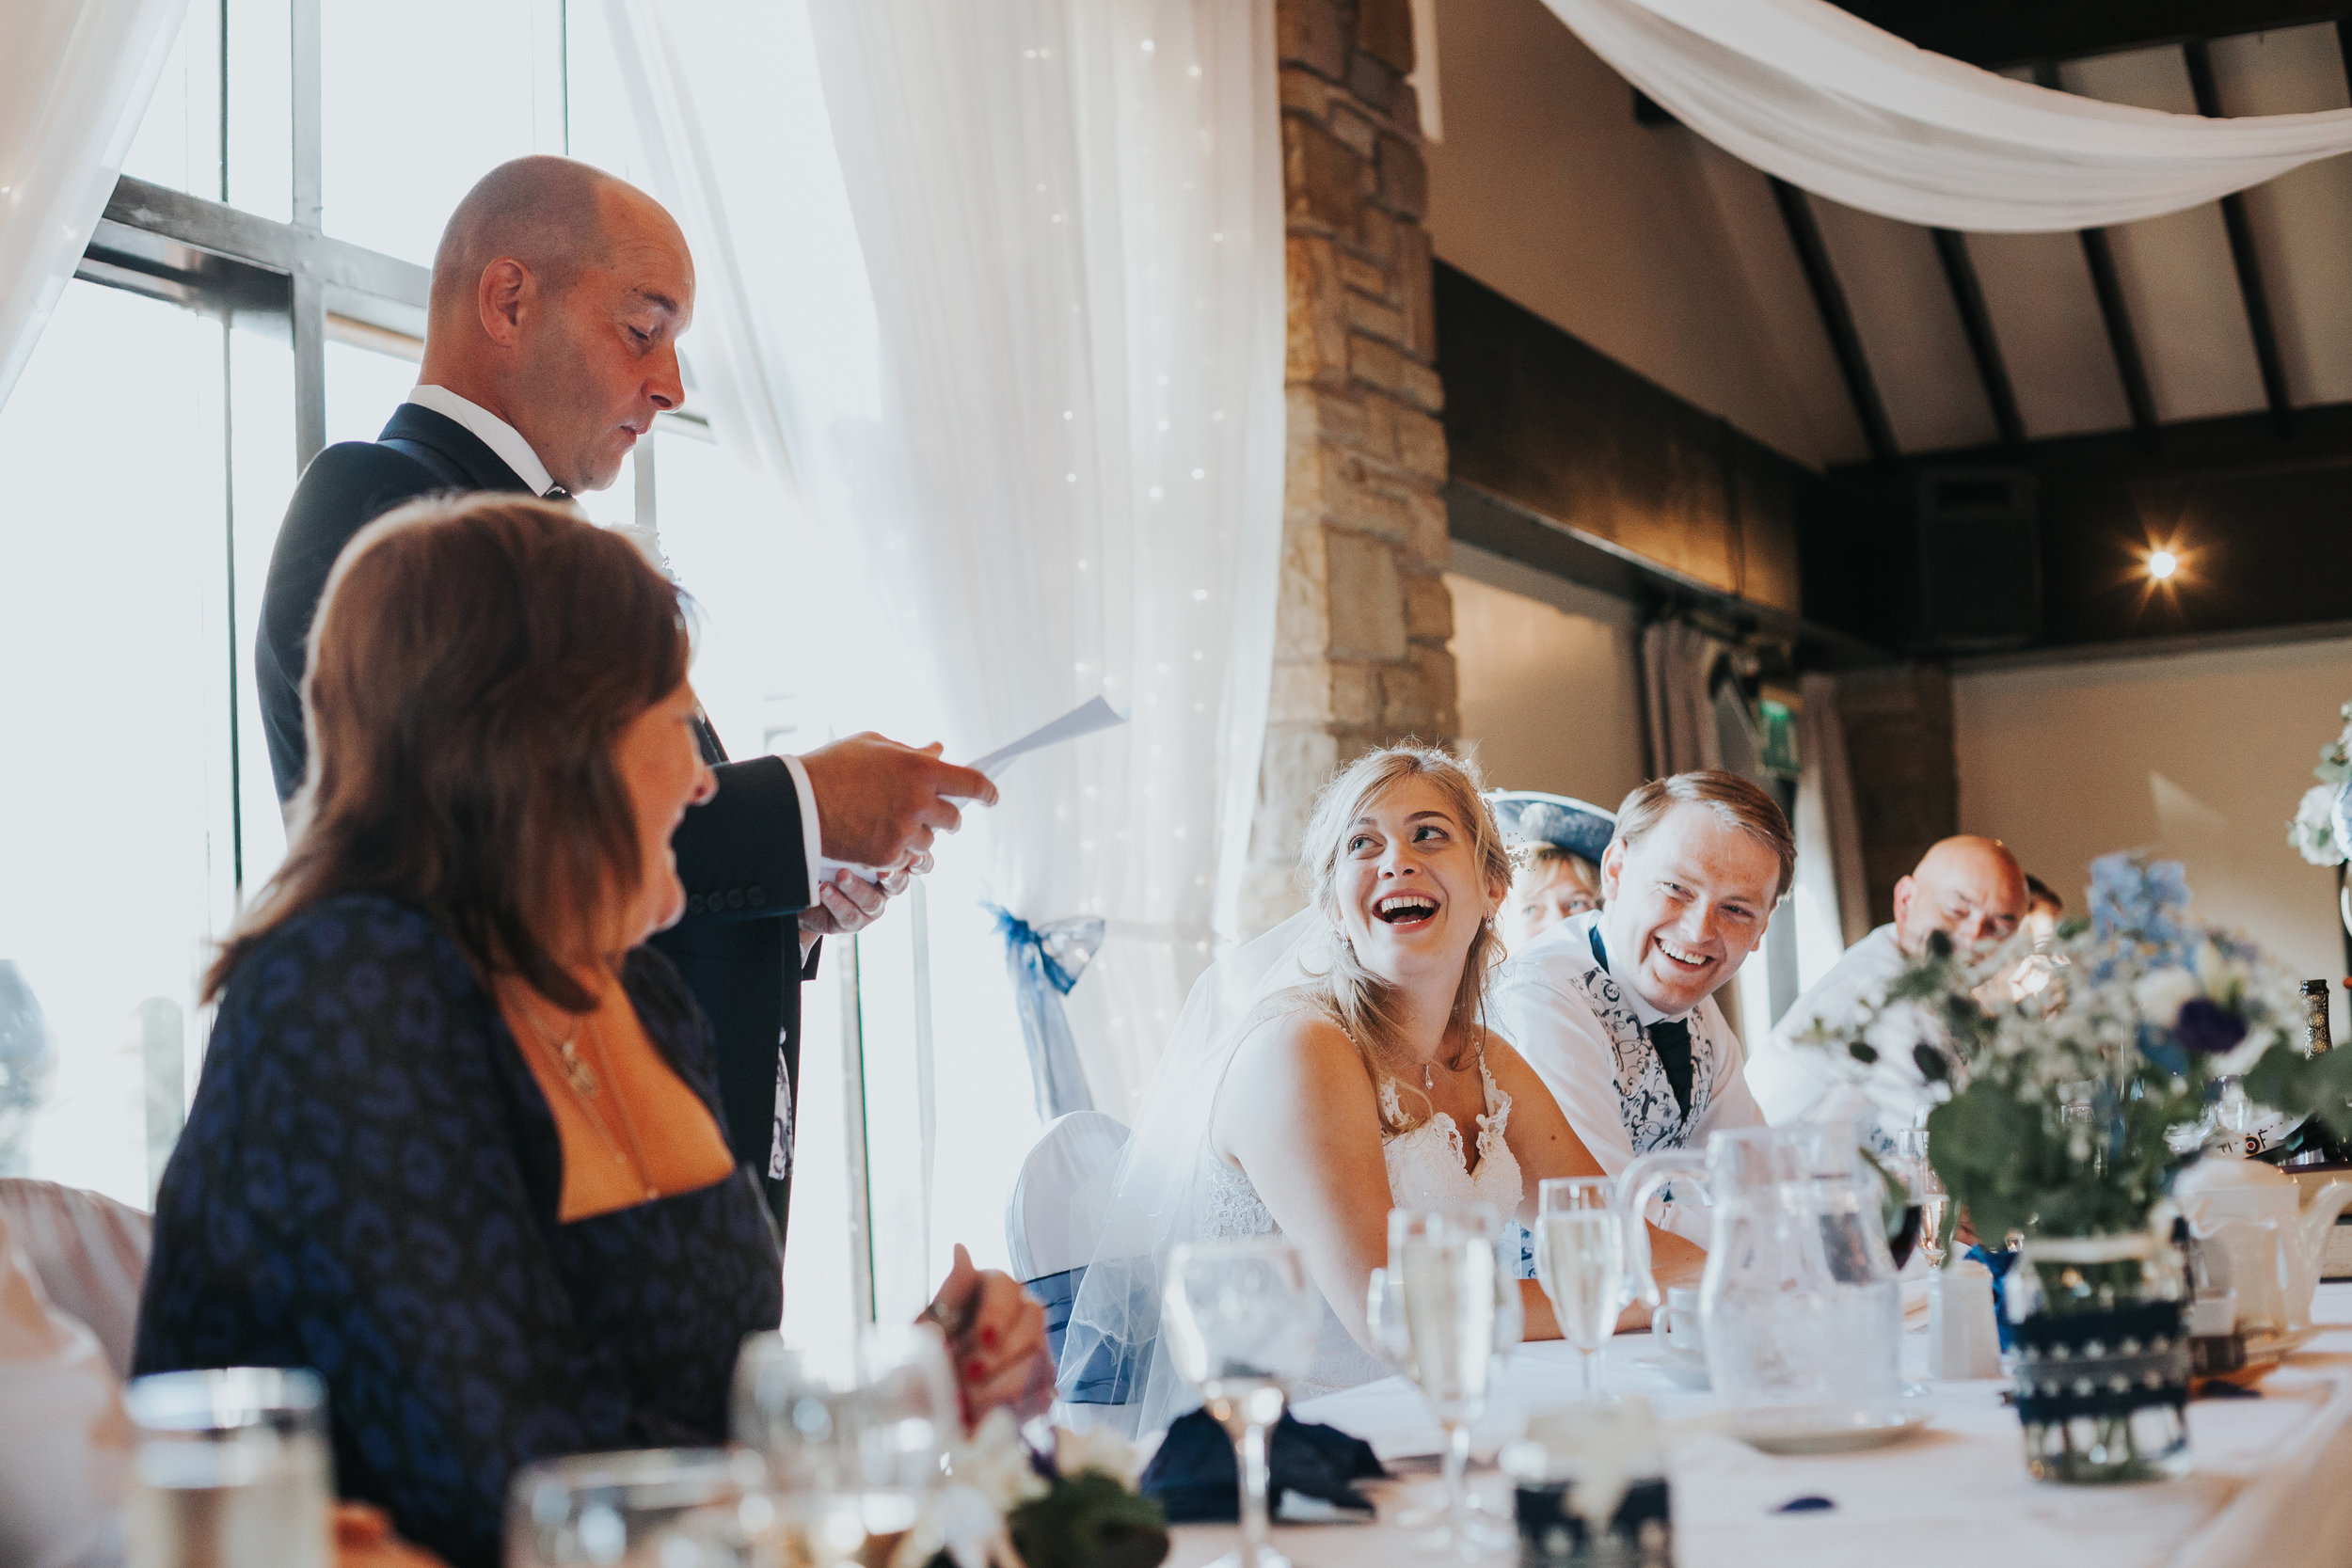 Bride laughs as her father gives a speech.